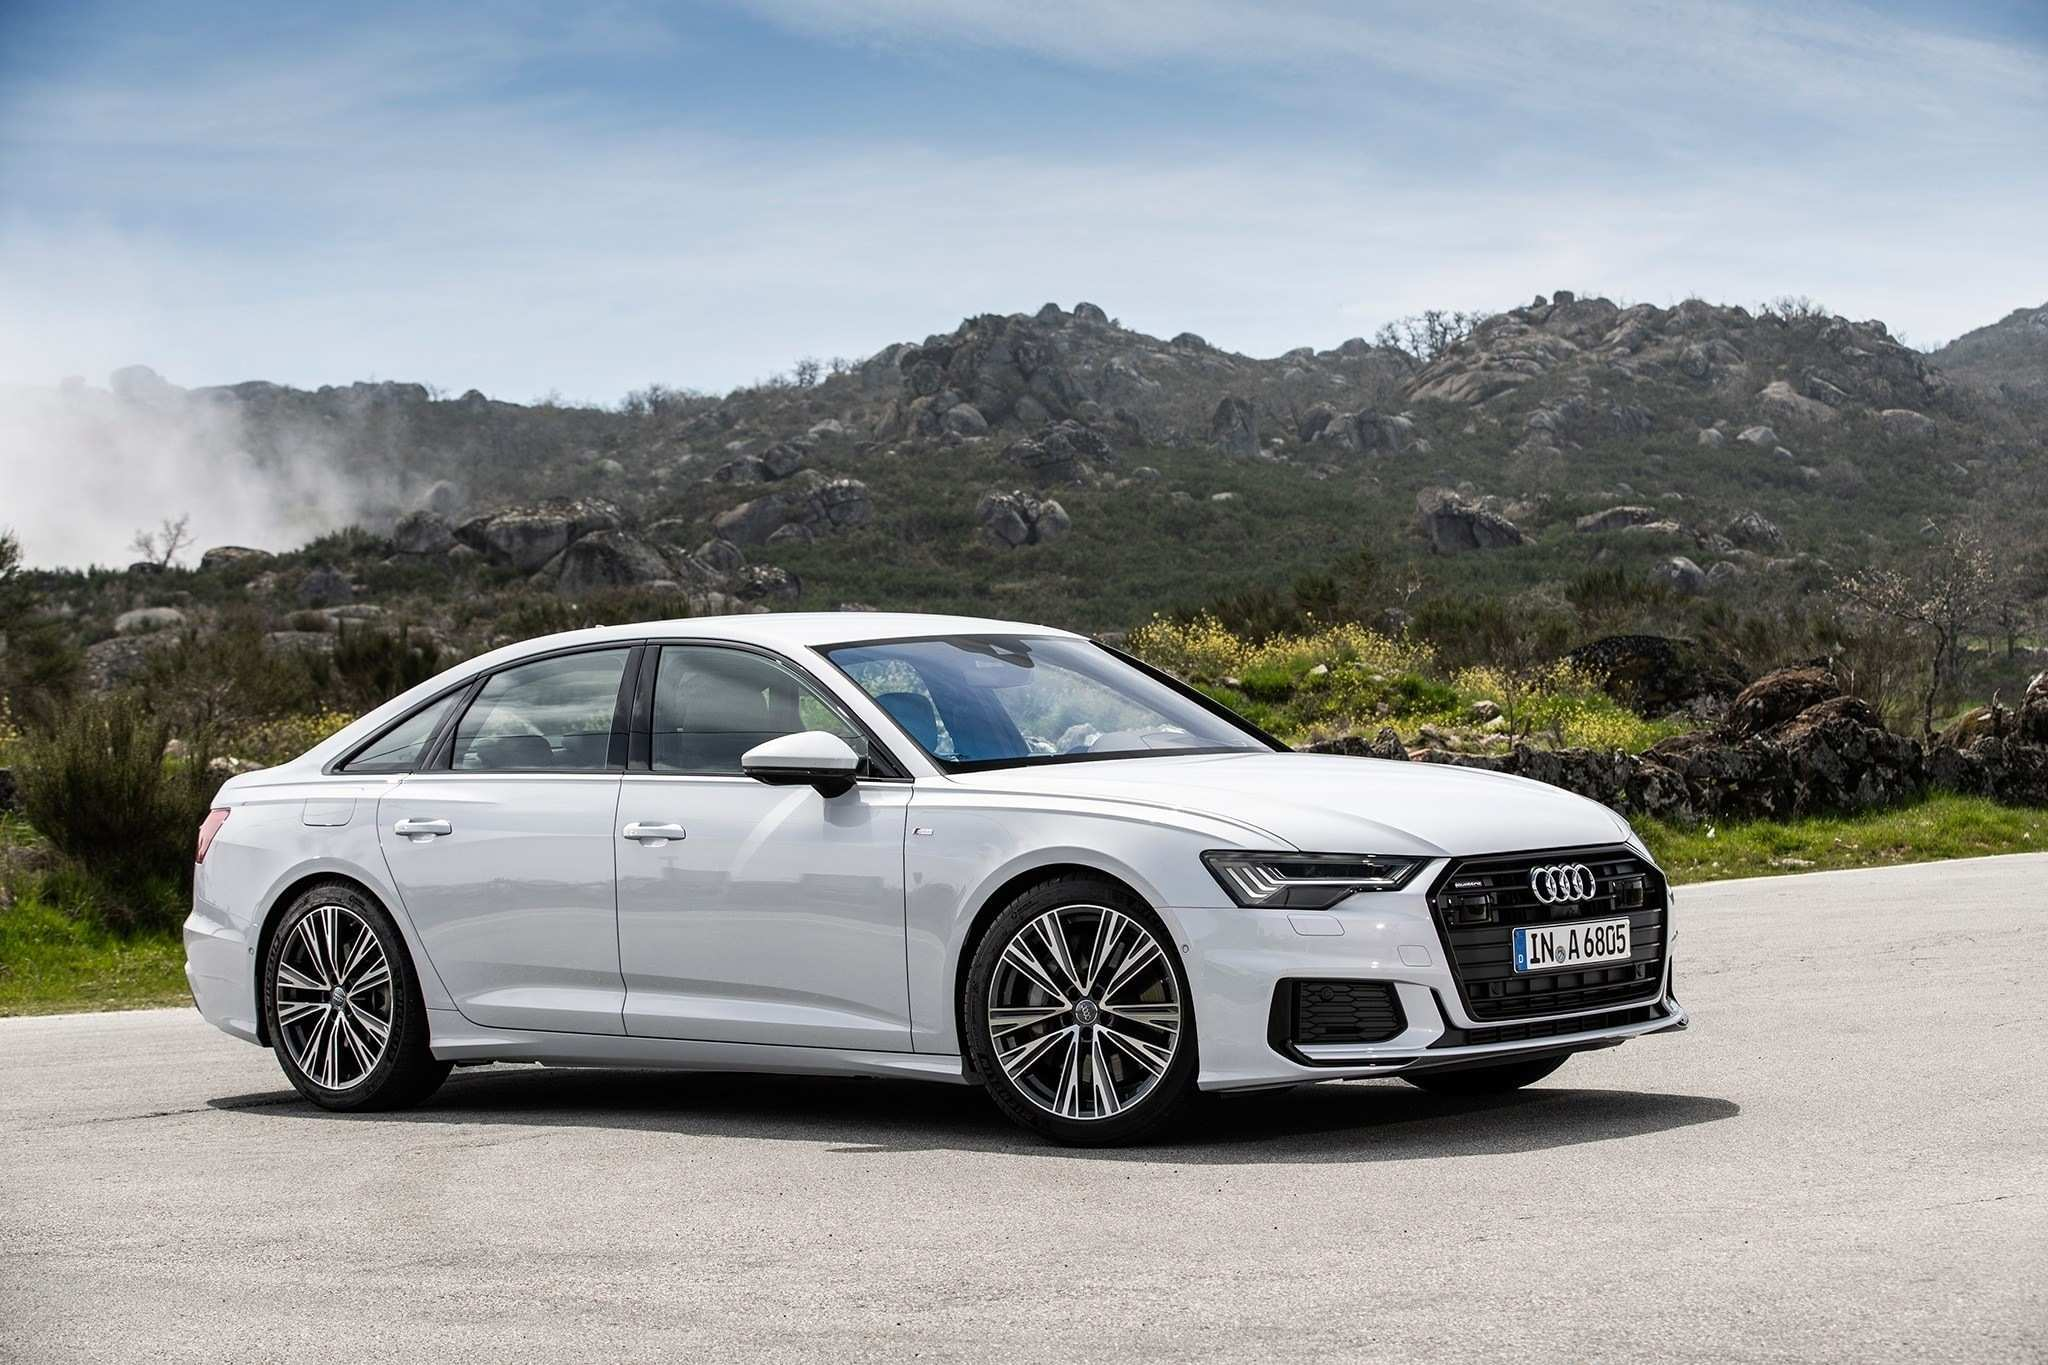 77 The 2019 Audi A6 Comes New Model And Performance